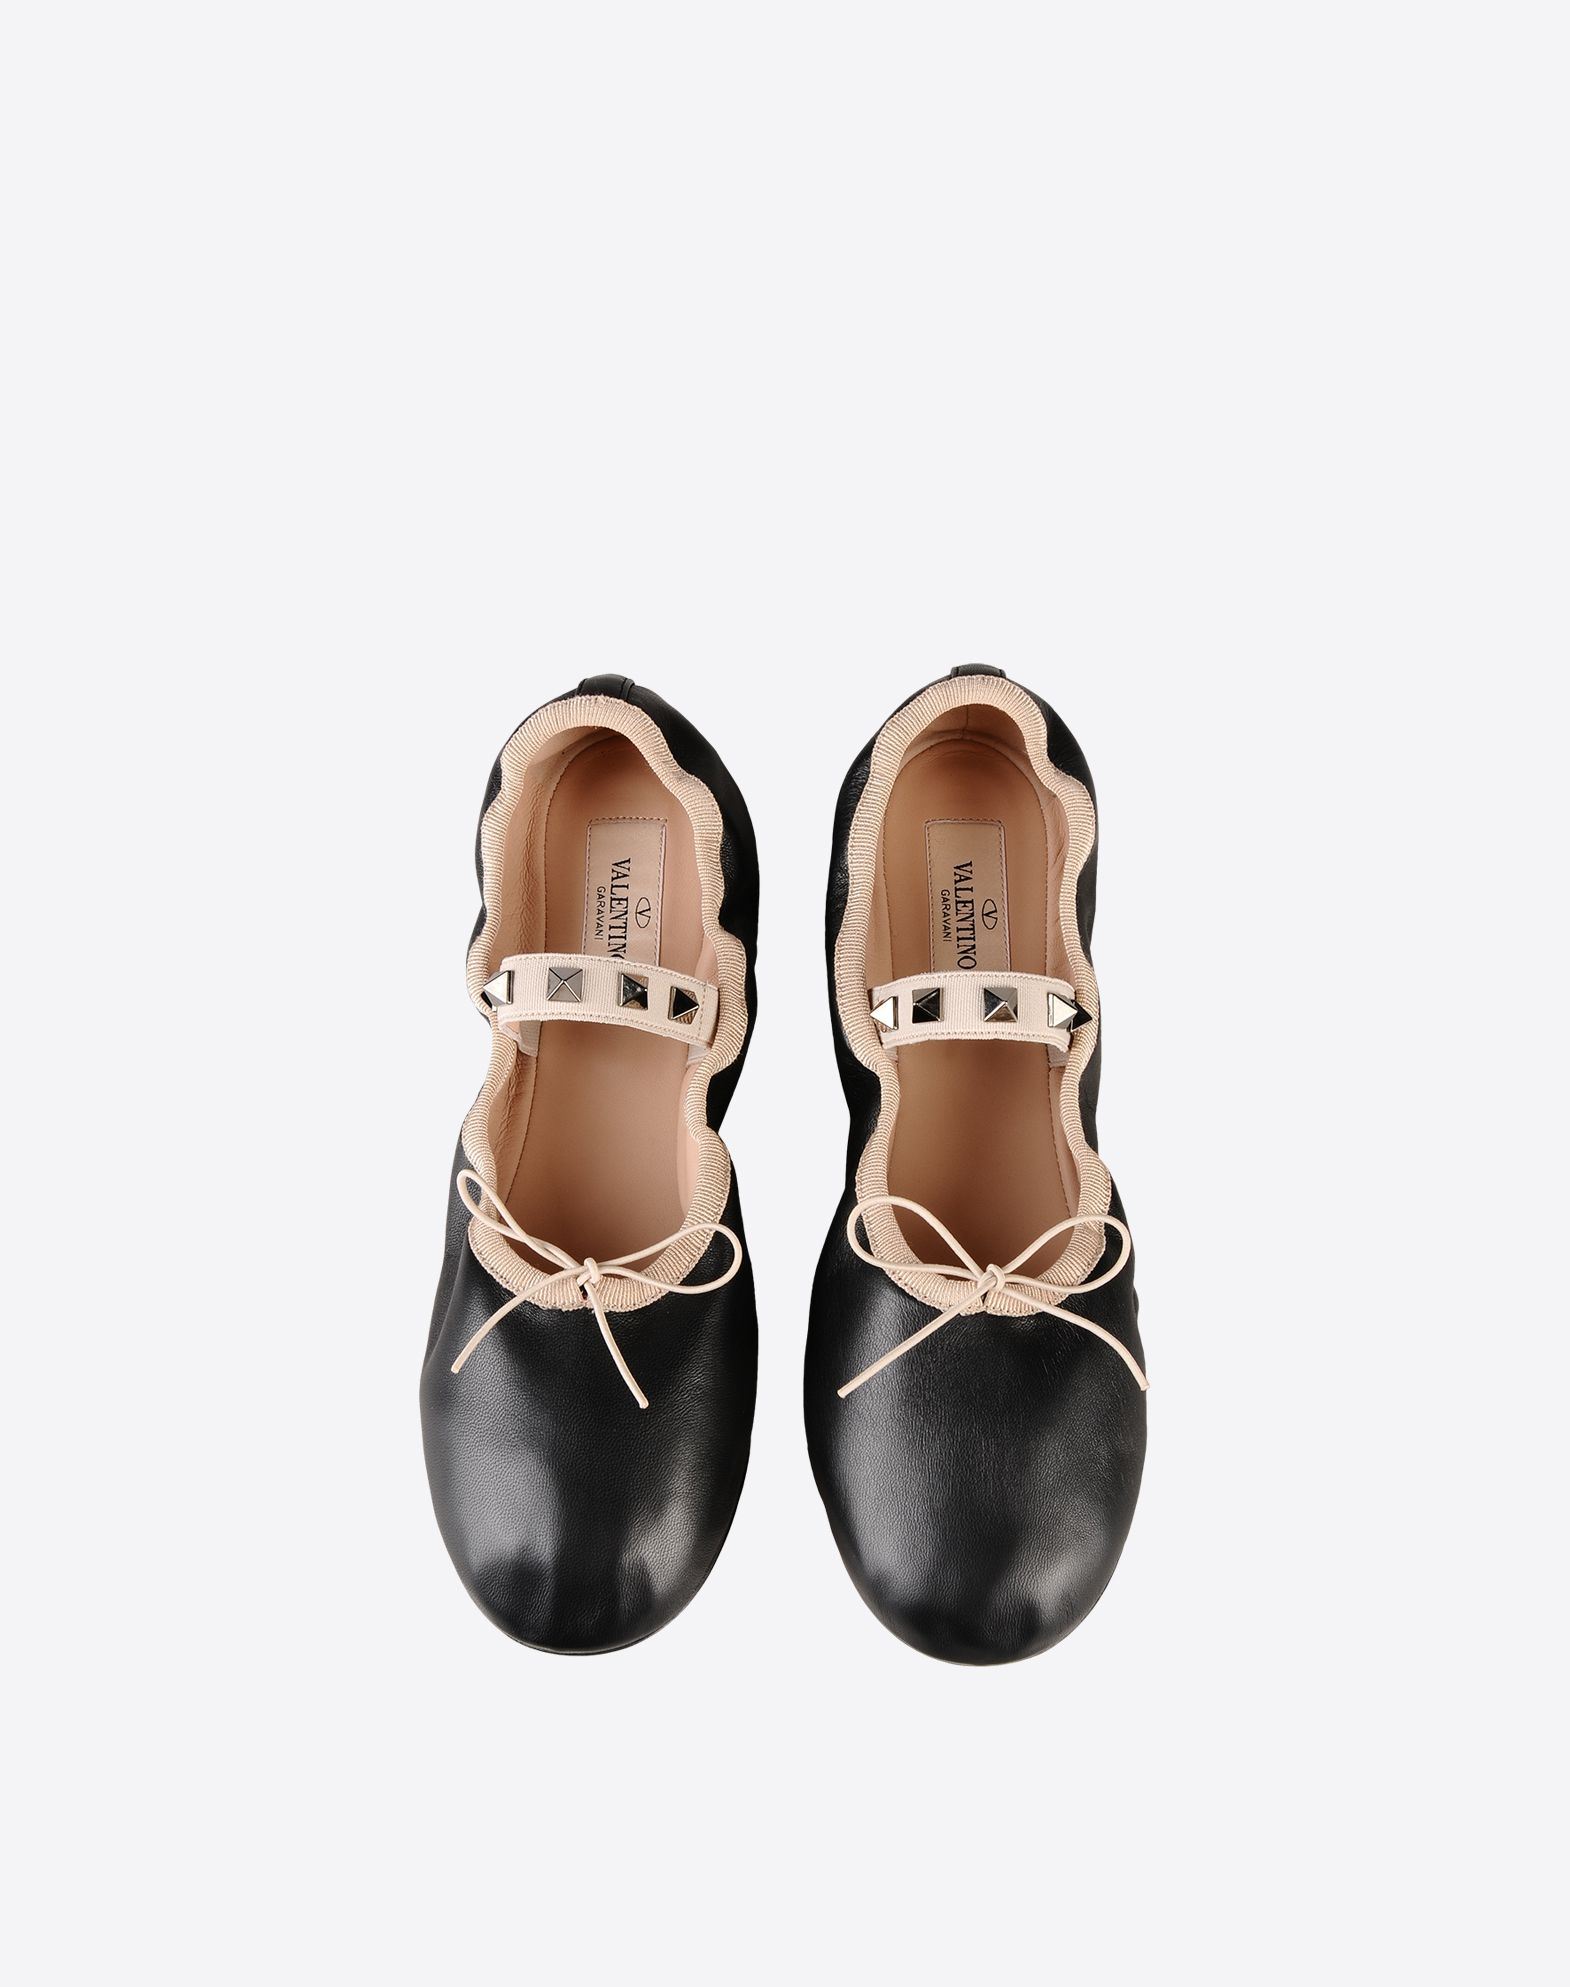 VALENTINO Bow detailing Studs Solid color Elasticized gores Leather sole Round toeline  11094069uo